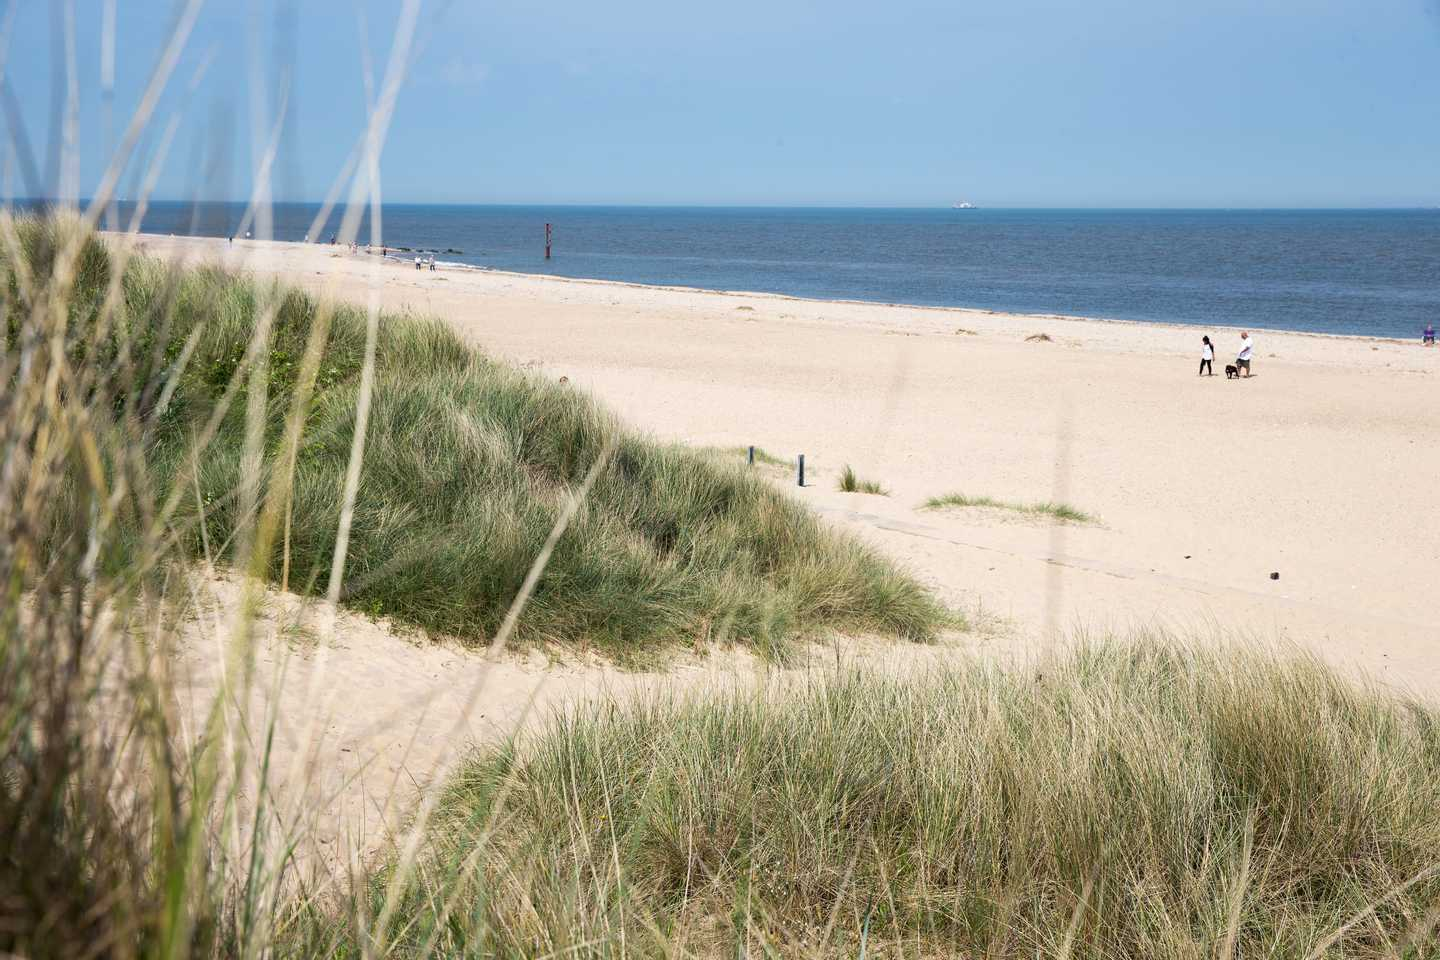 Beach grass, sand and sea